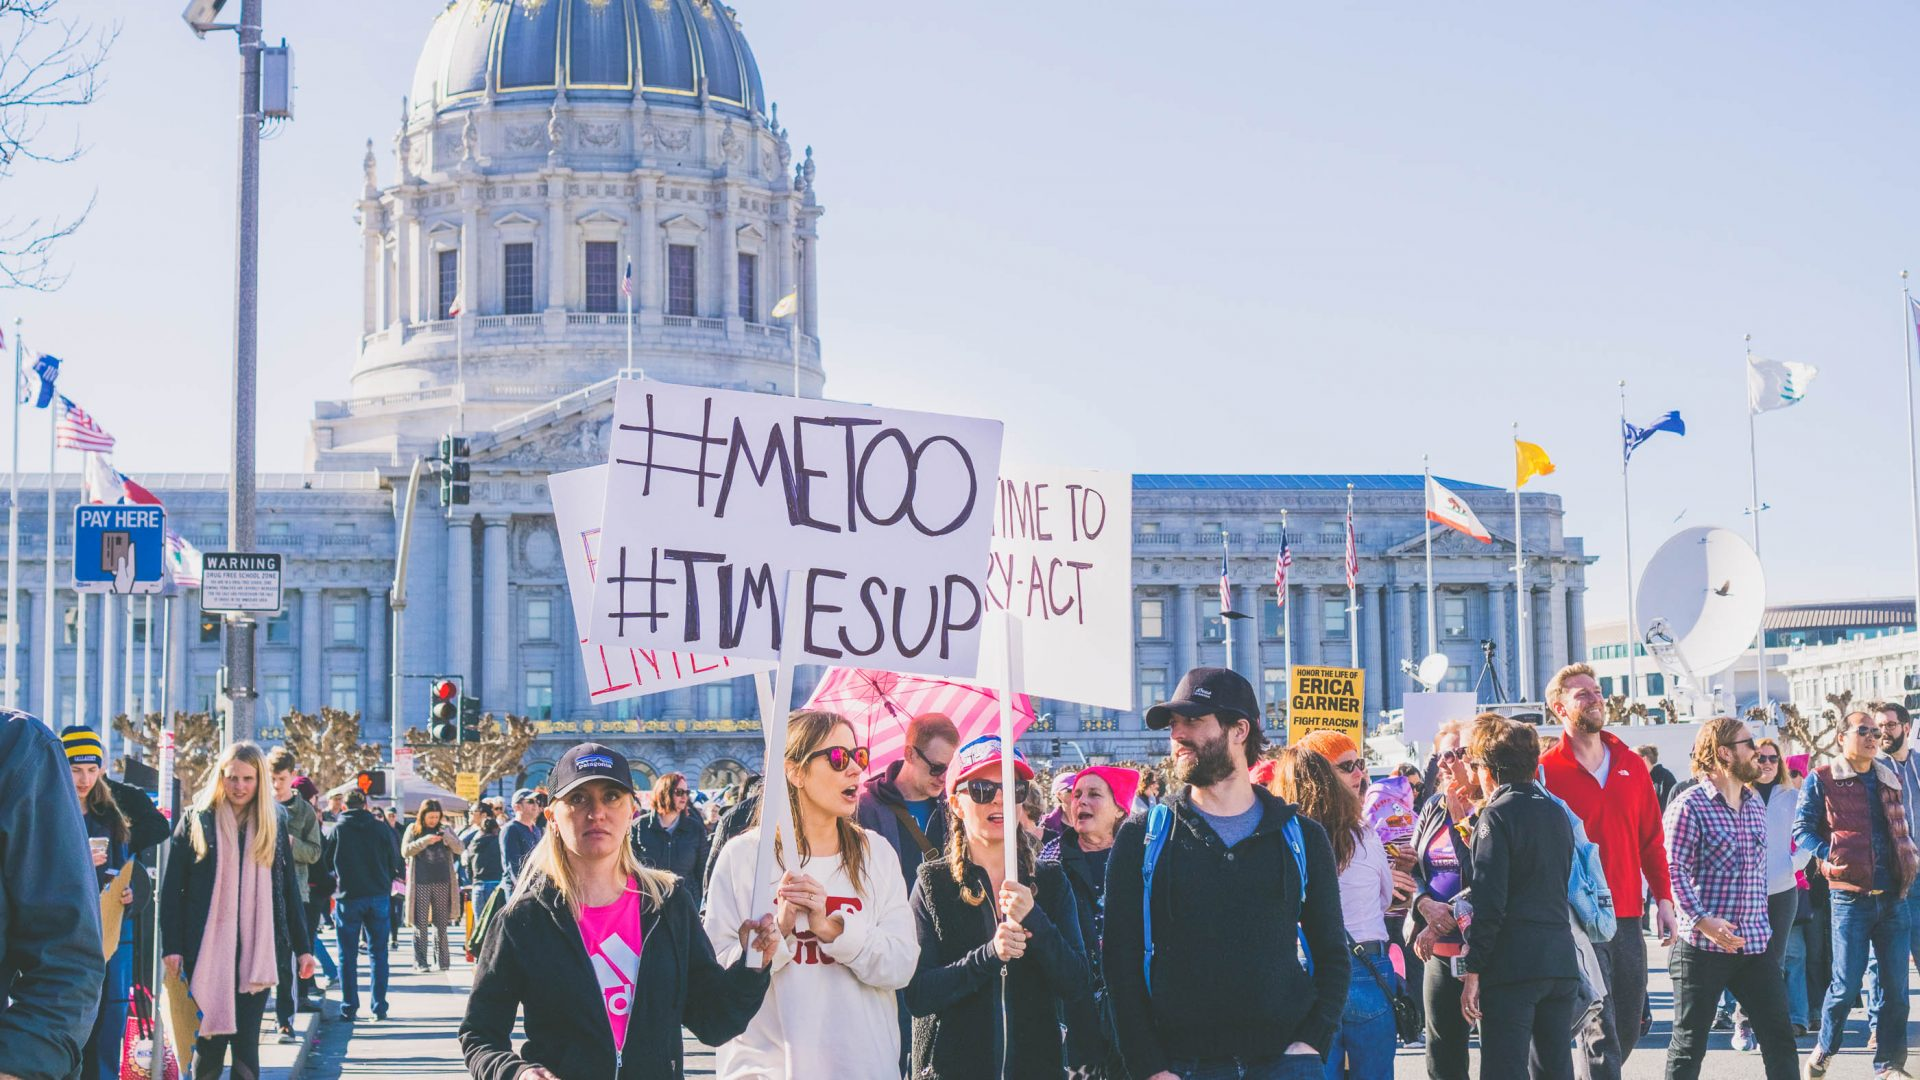 Has #MeToo changed how women experience travel?